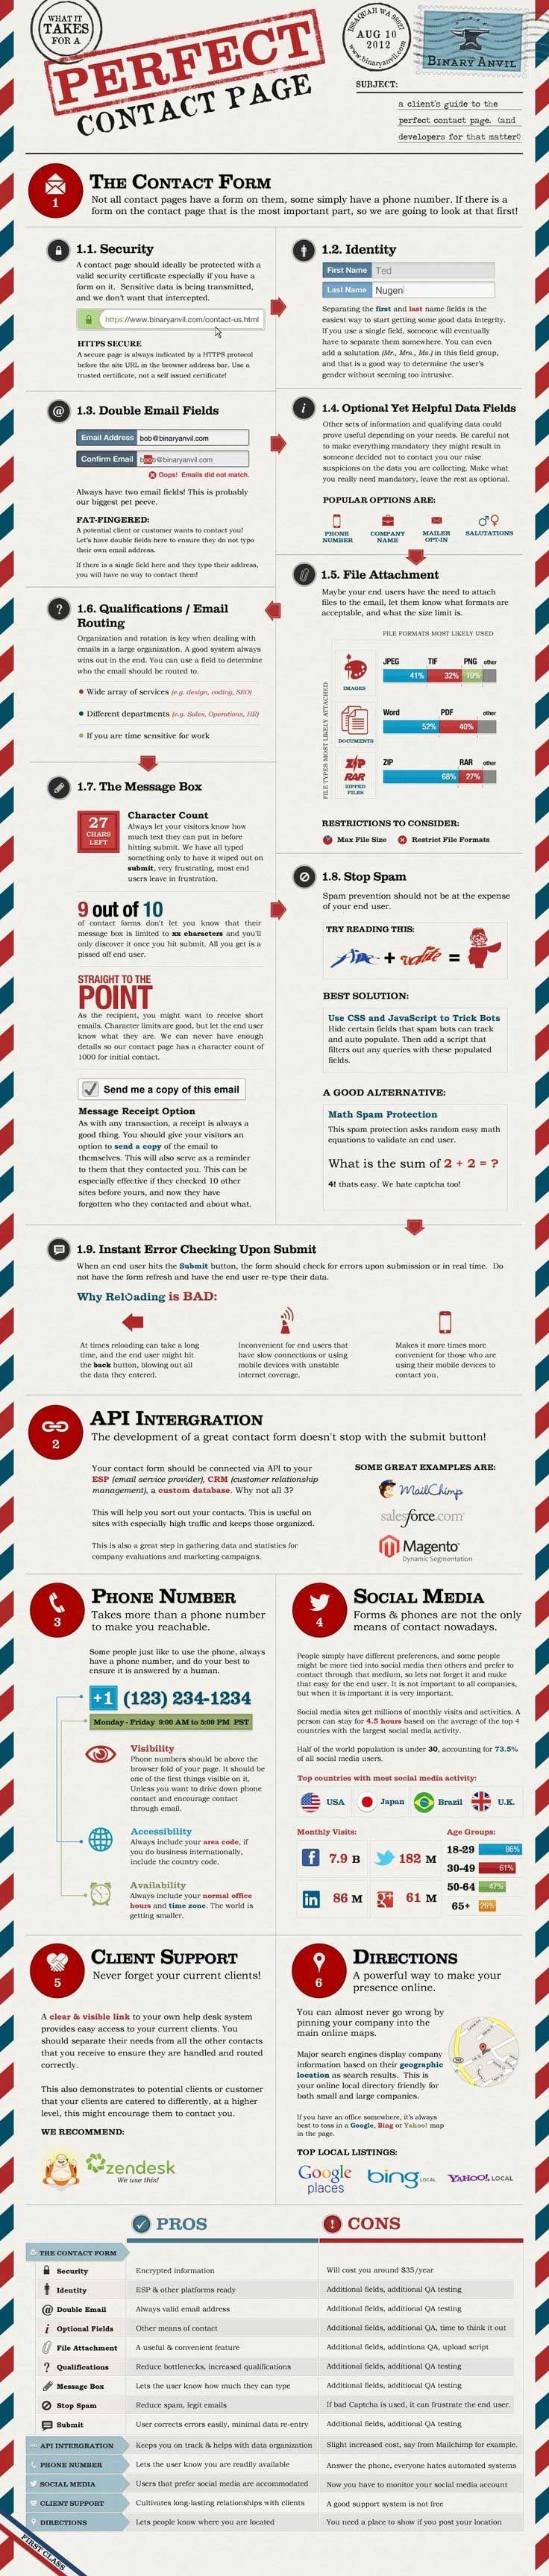 [INFOGRAPHIC] The Perfect Web Site Contact page: Form; API; Phone; Social Media; Clients; Directions; Details.